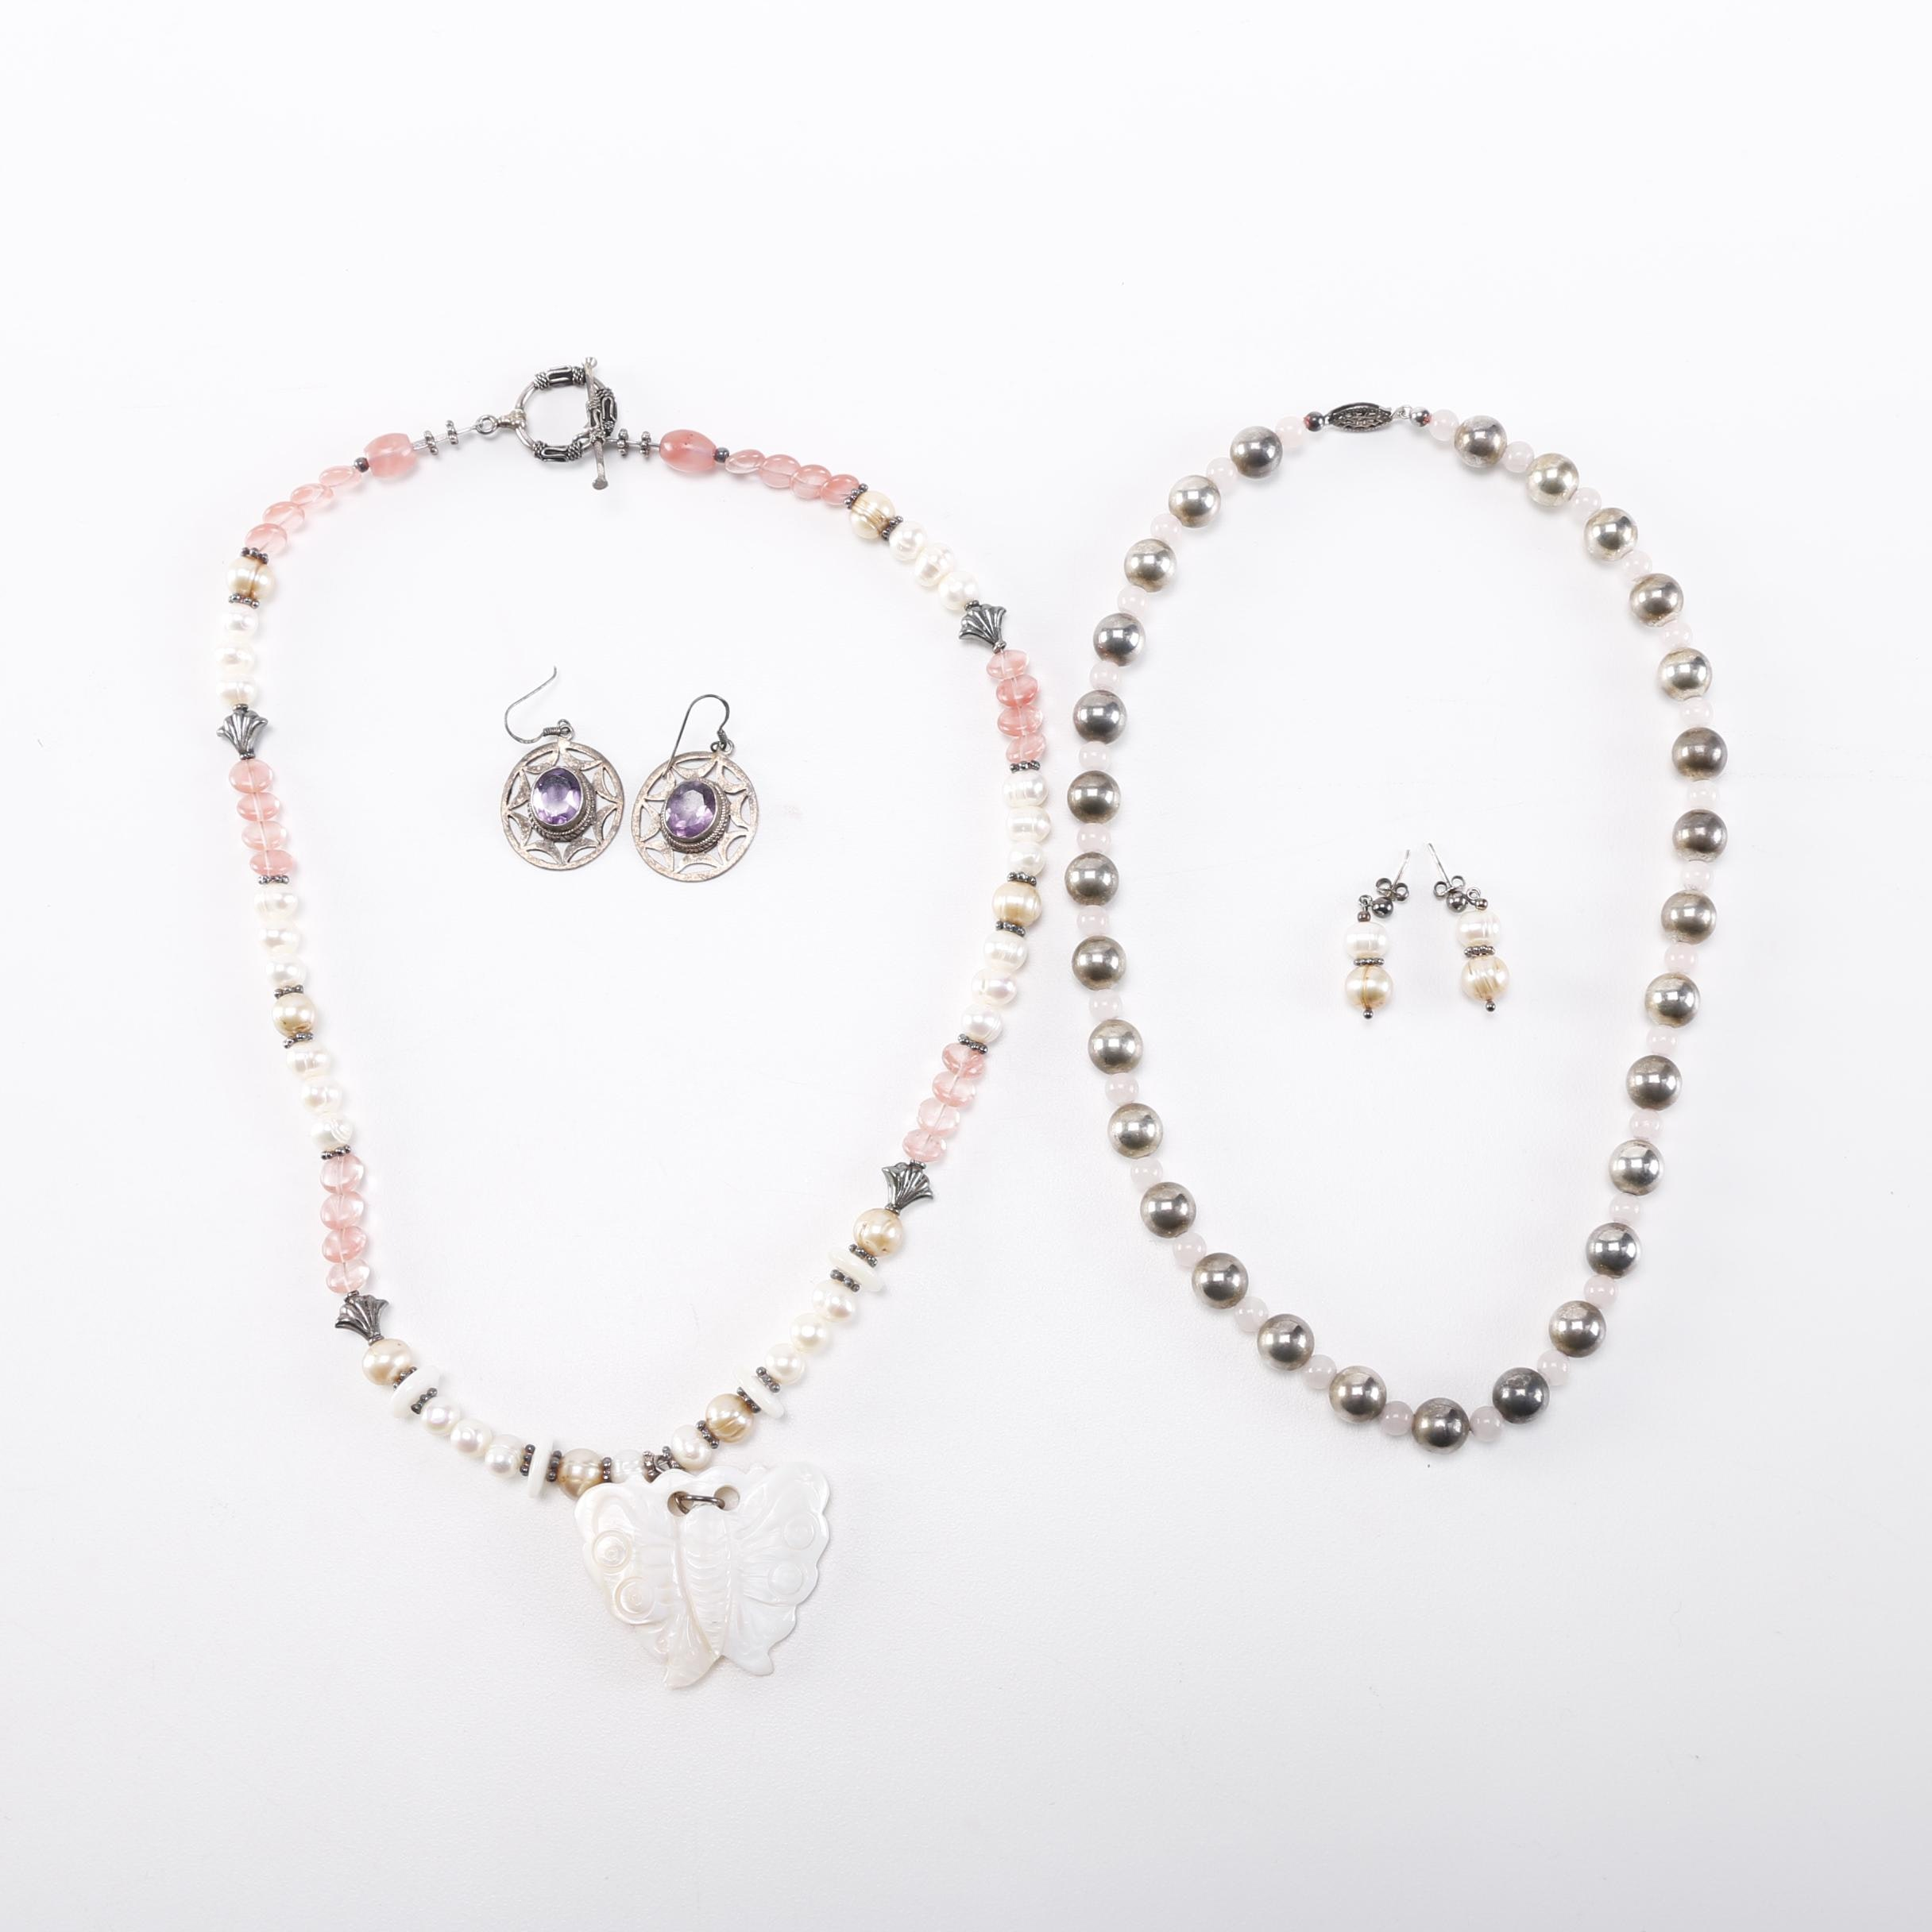 Sterling Silver Jewelry with Pearls and Stones